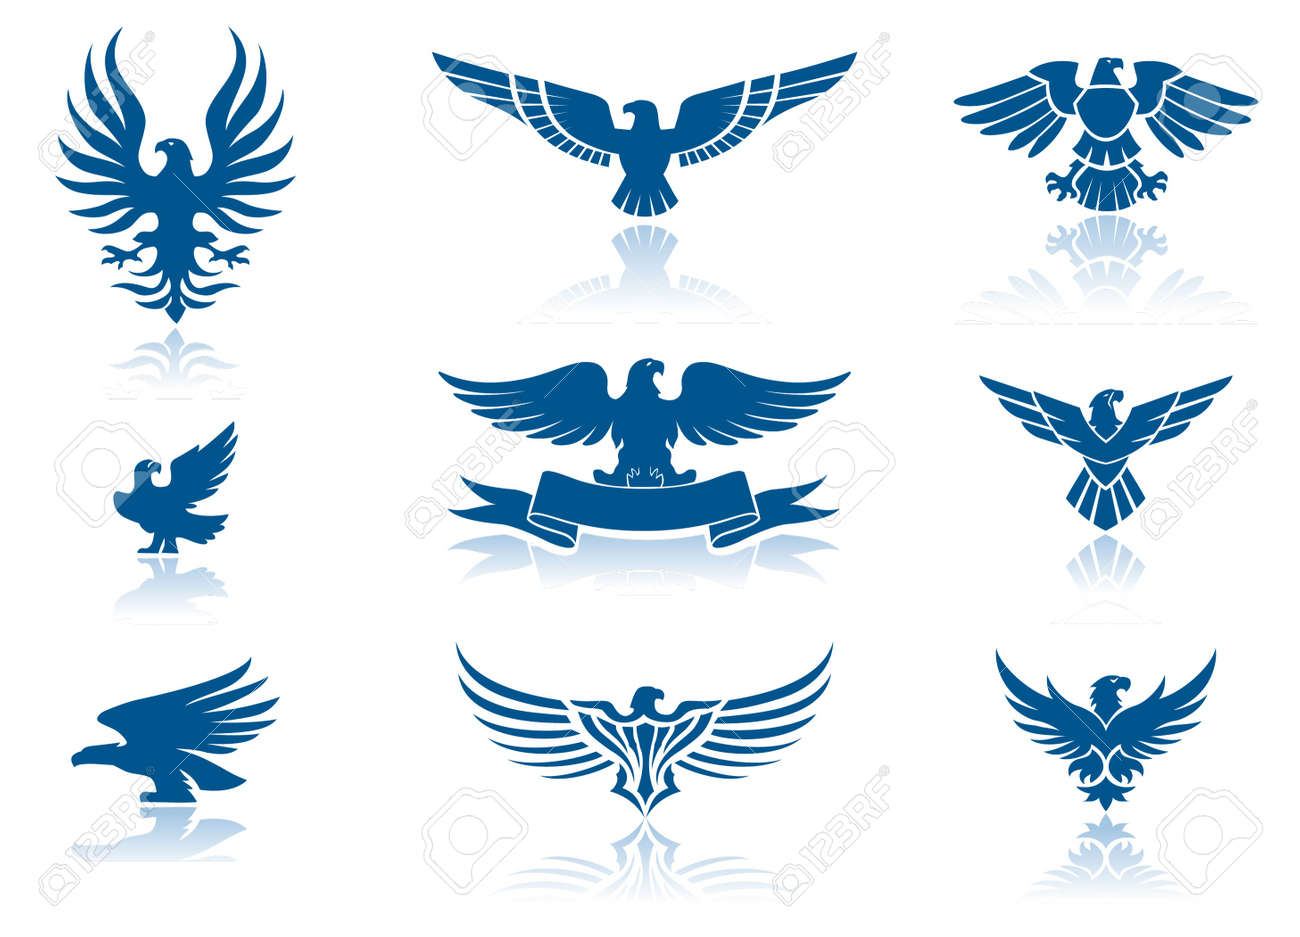 retro eagles insignias set royalty free cliparts vectors and stock illustration image 11238849 retro eagles insignias set